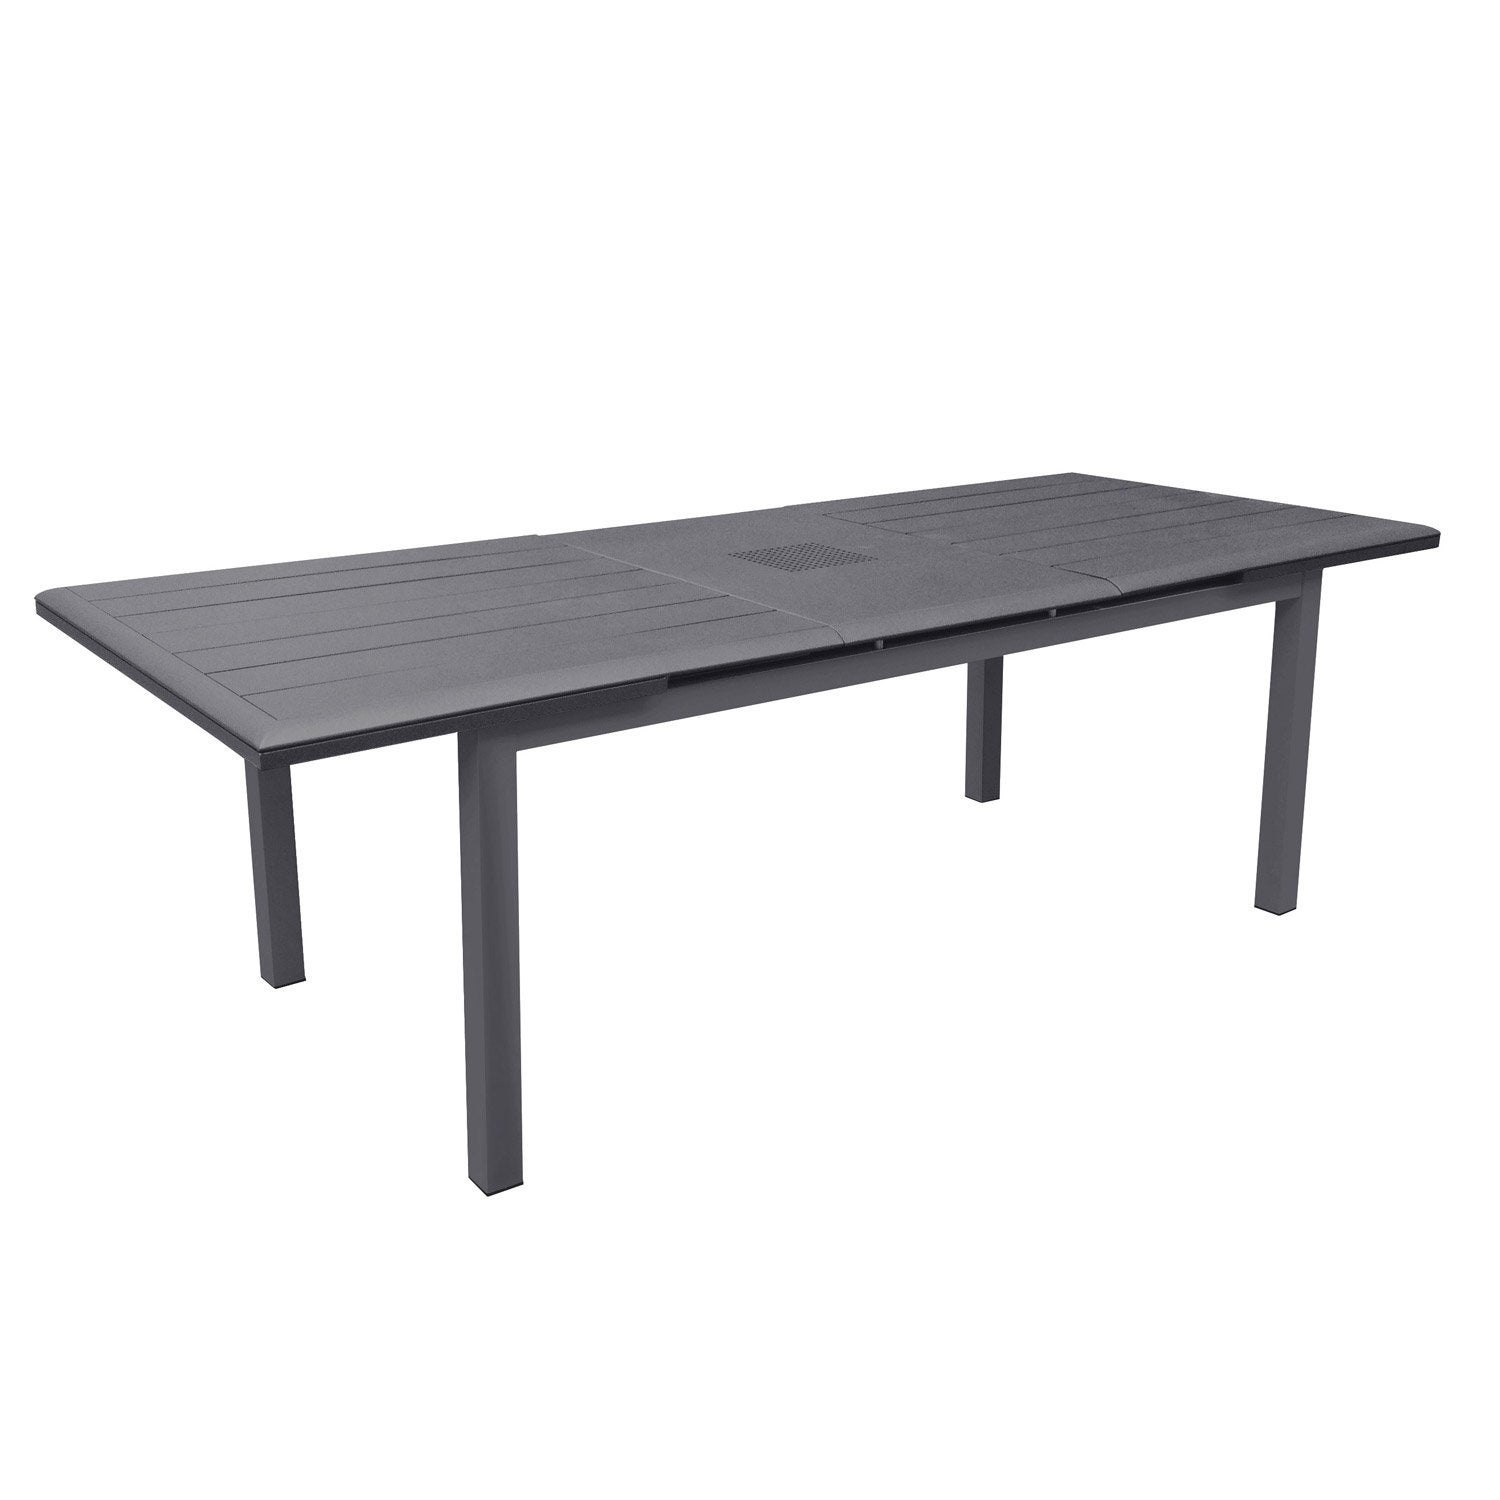 Table de jardin louisiane rectangulaire gris 6 8 personnes for Table de jardin modulable